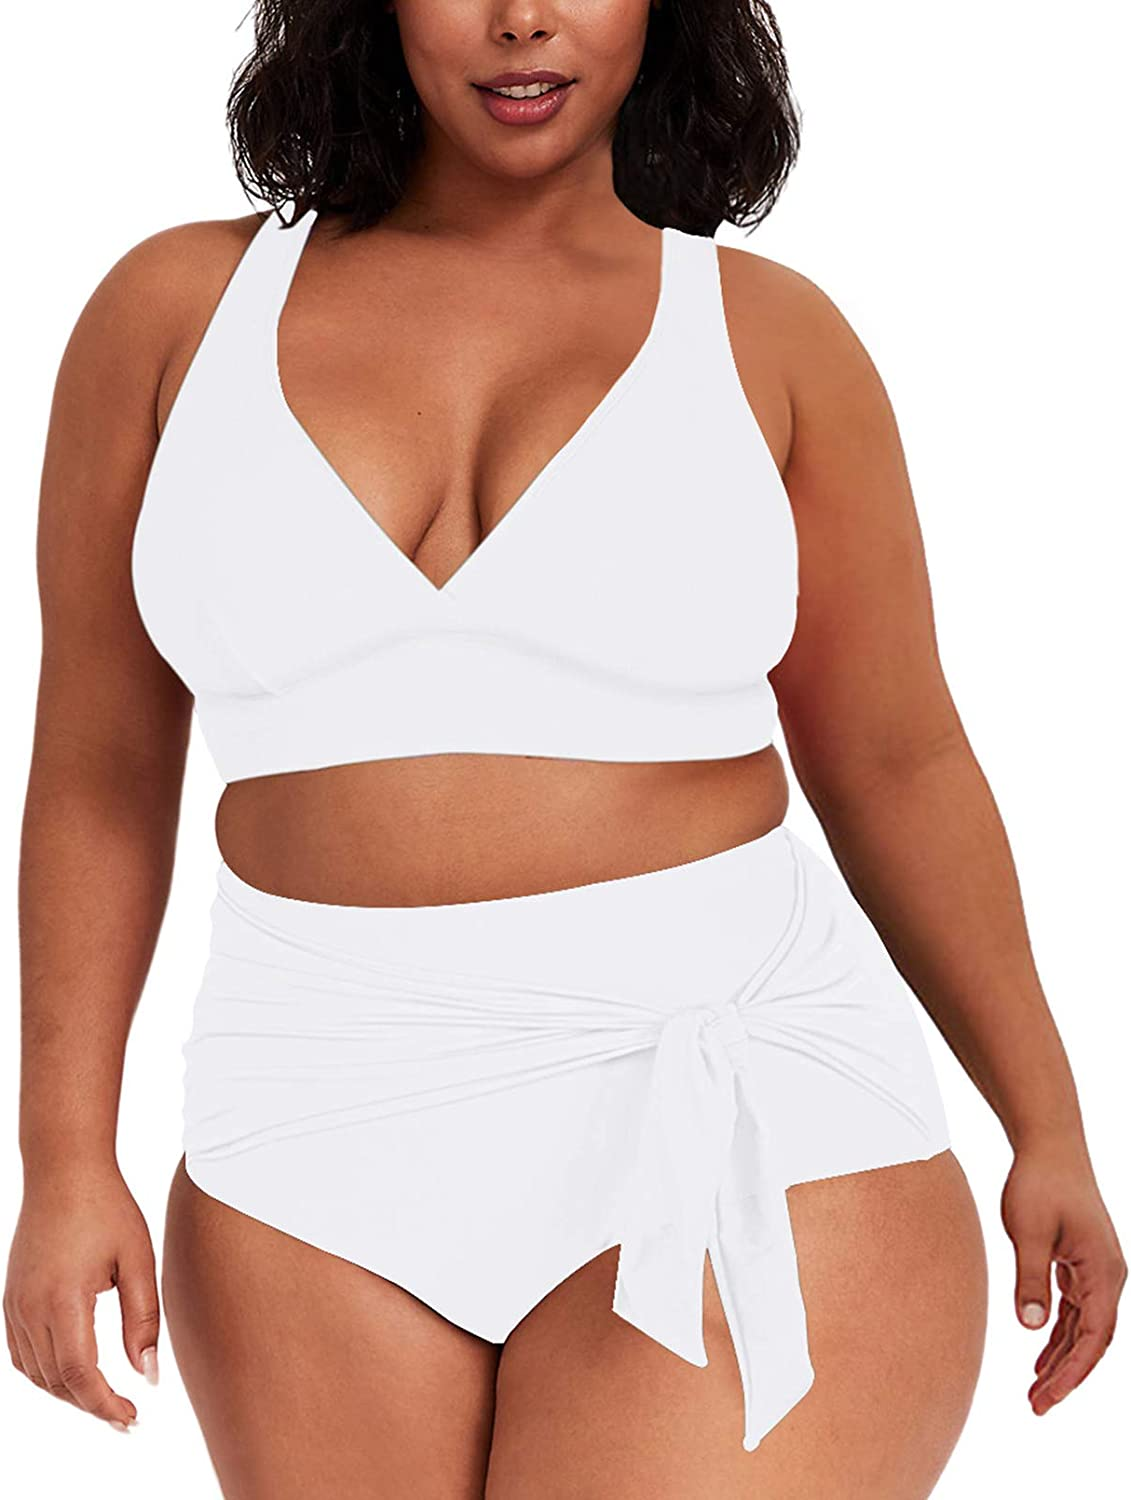 TOLENY Women's Plus Size 2 Piece Swimsuit V Neck High Waist Tummy Control Bathing Suits Knotted Swimwear